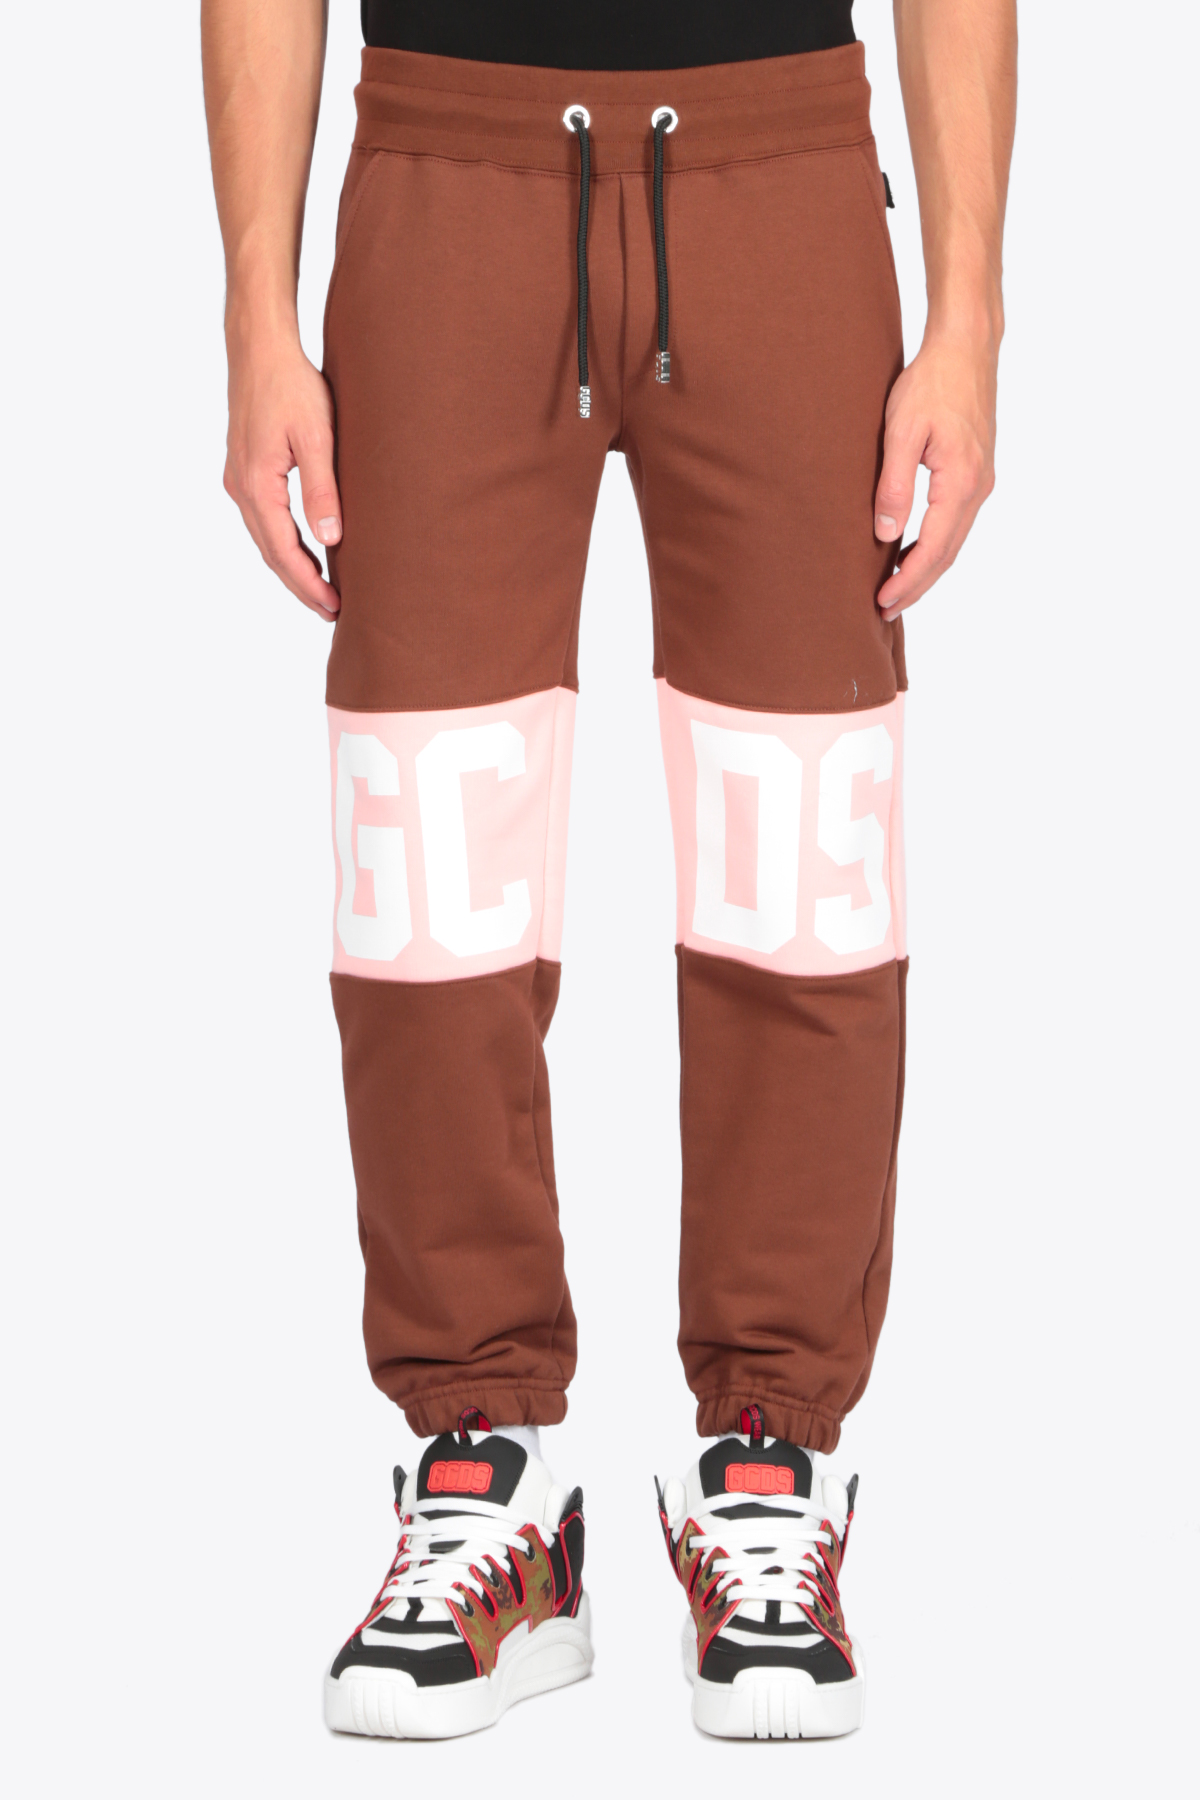 BAND LOGO SWEATPANTS GCDS | 9 | CC94M031005 BAND LOGO SWEATPANTS14